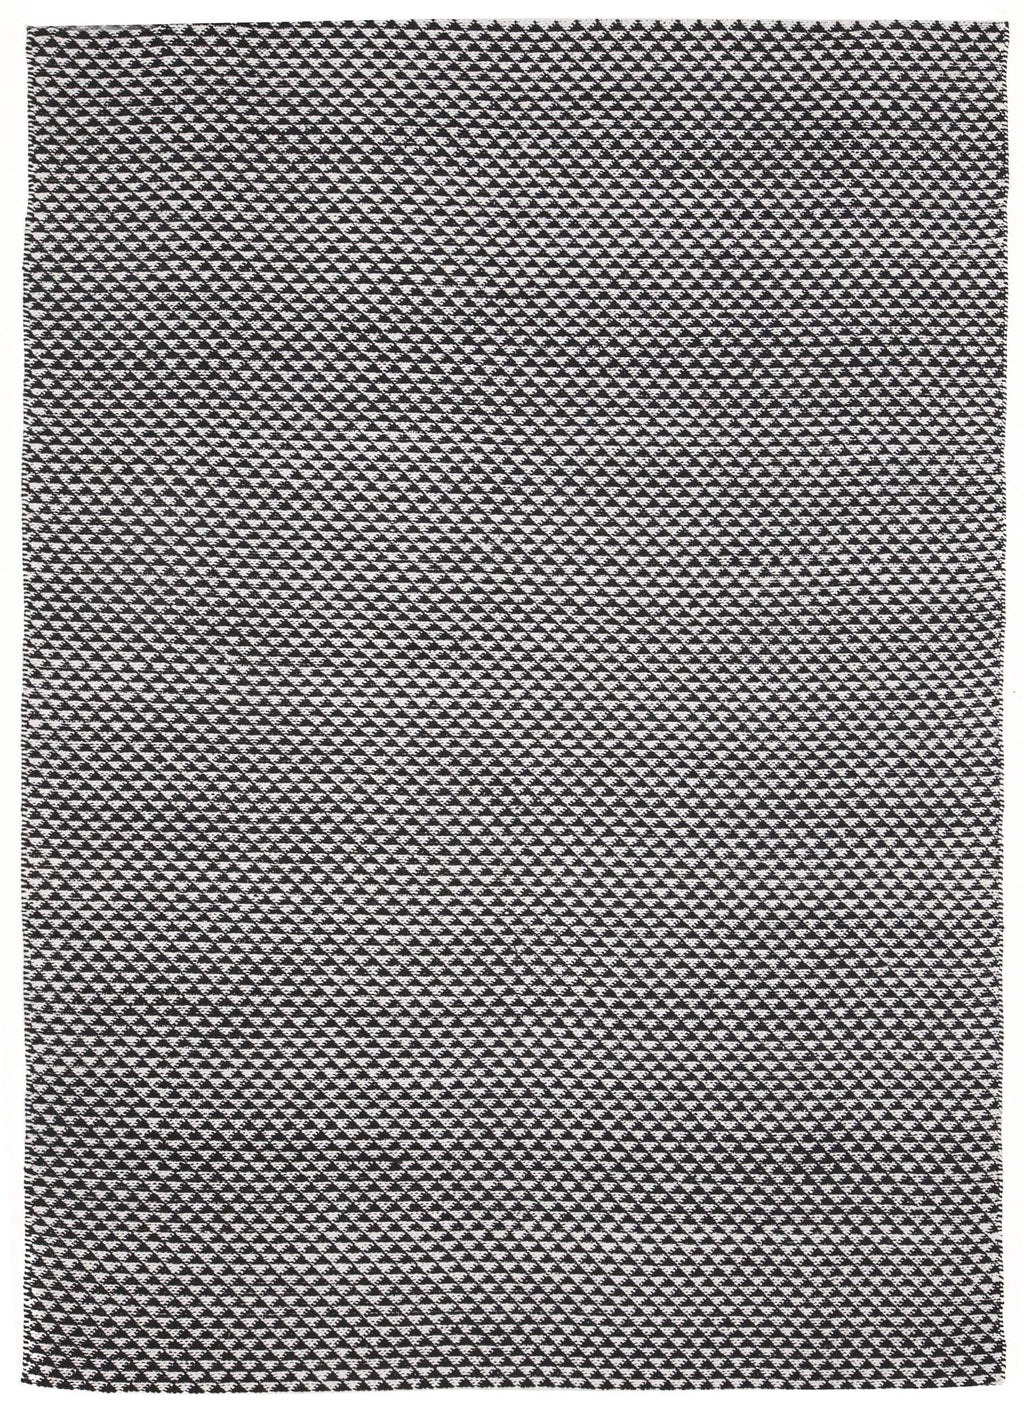 Quebec Black & White Mosaic Triangle Rug